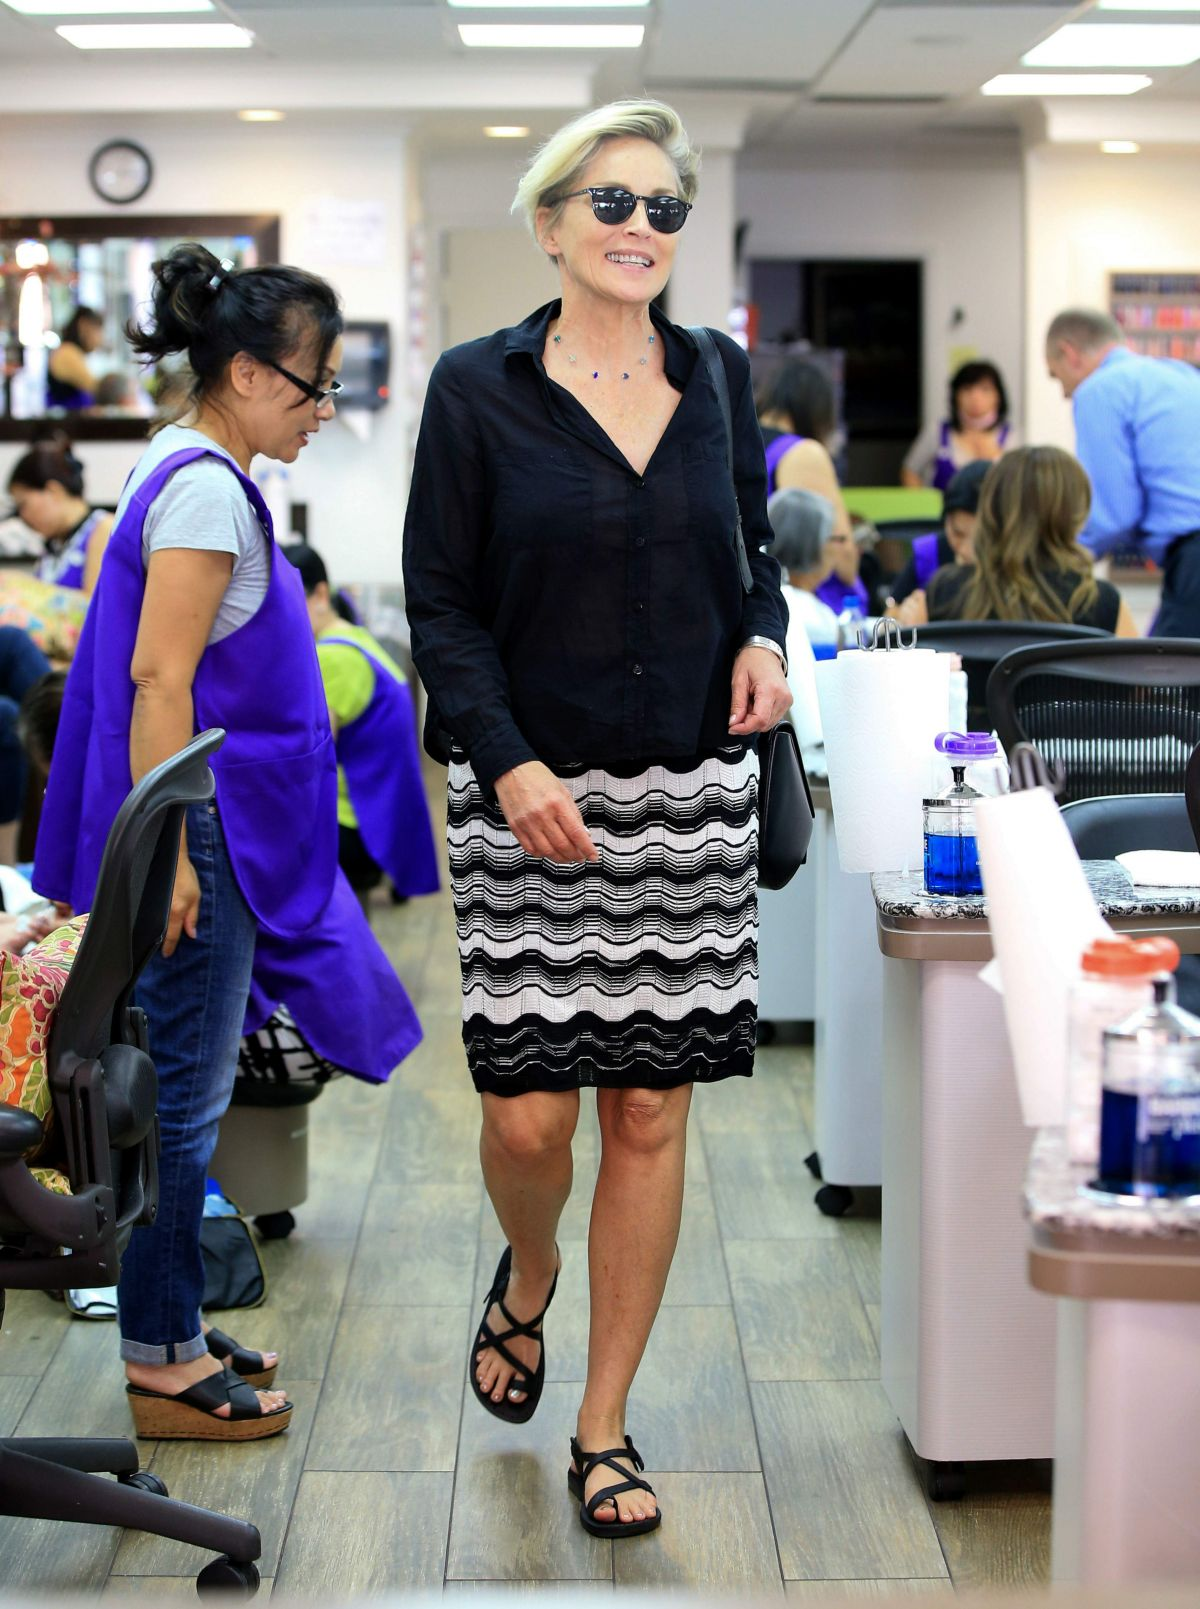 SHARON STONE at a Nail Salon in Beverly Hills 08/31/2016